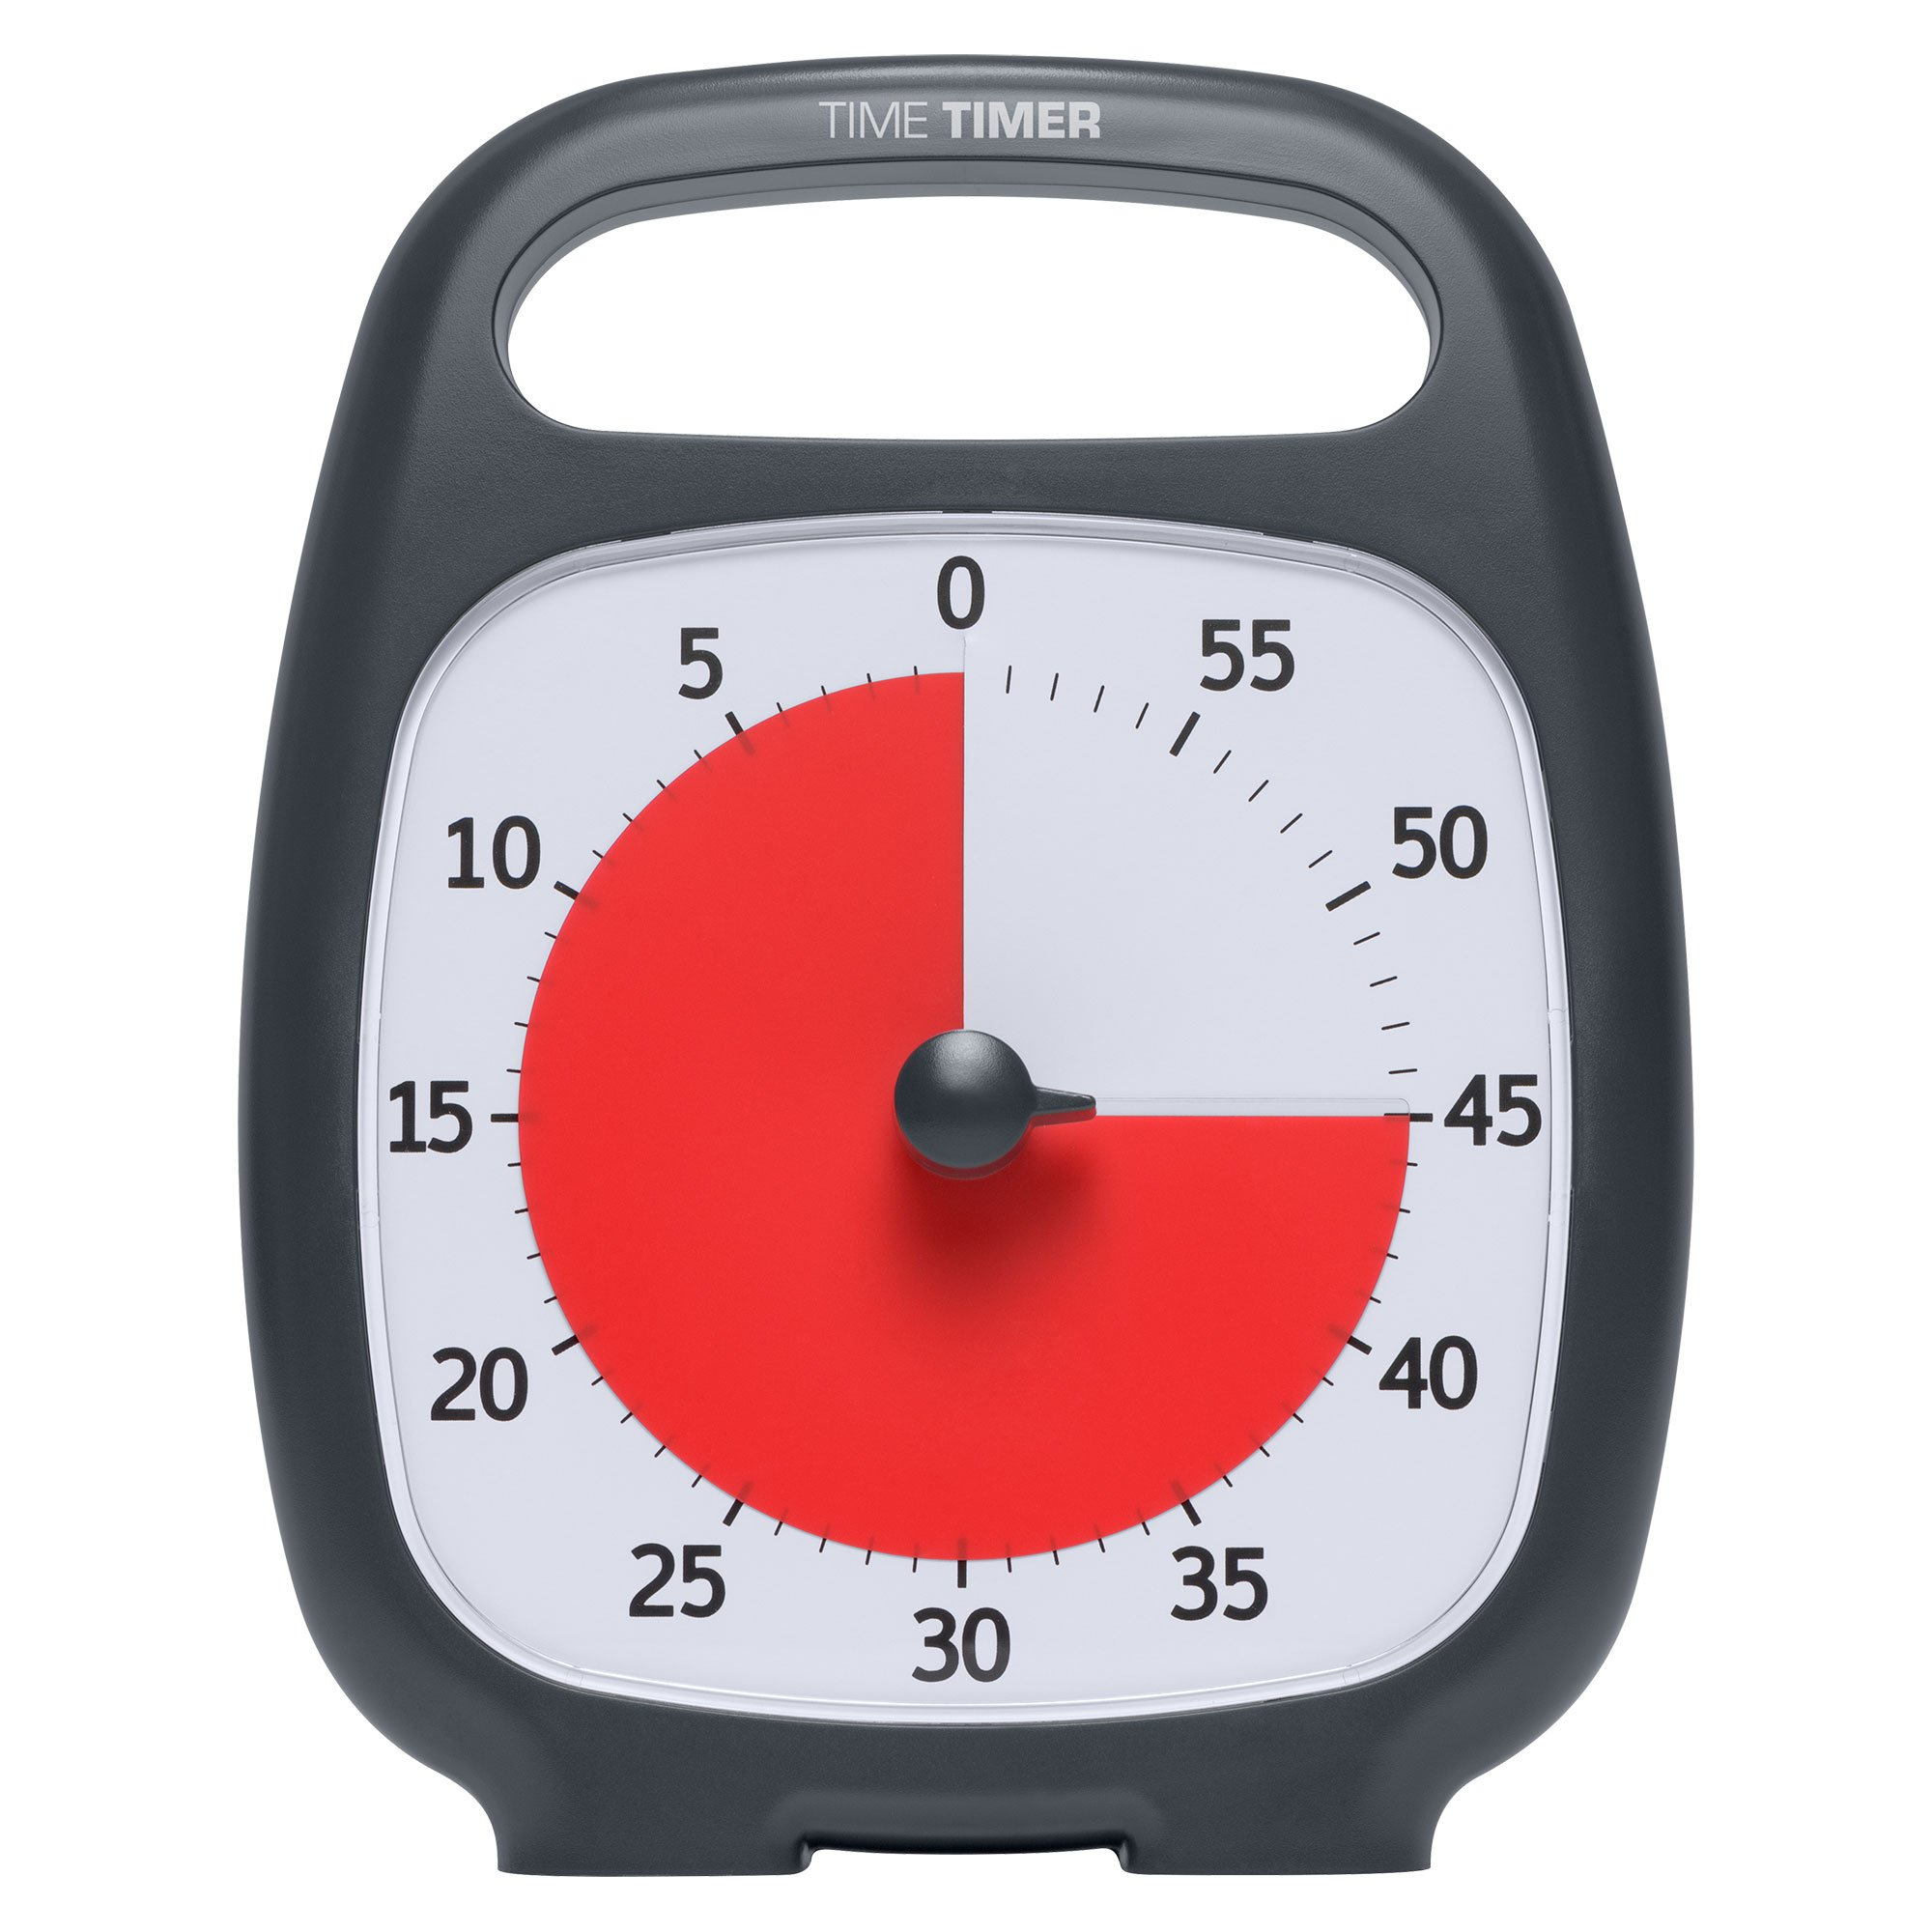 """Time Timer TTP7-W TTP7-W PLUS 60 Minute Visual Analog Timer; Optional Alert (Volume-Control Dial); Silent Operation (No Ticking); 5.5"""" wide x 7"""" tall; Time Management Tool; Charcoal"""